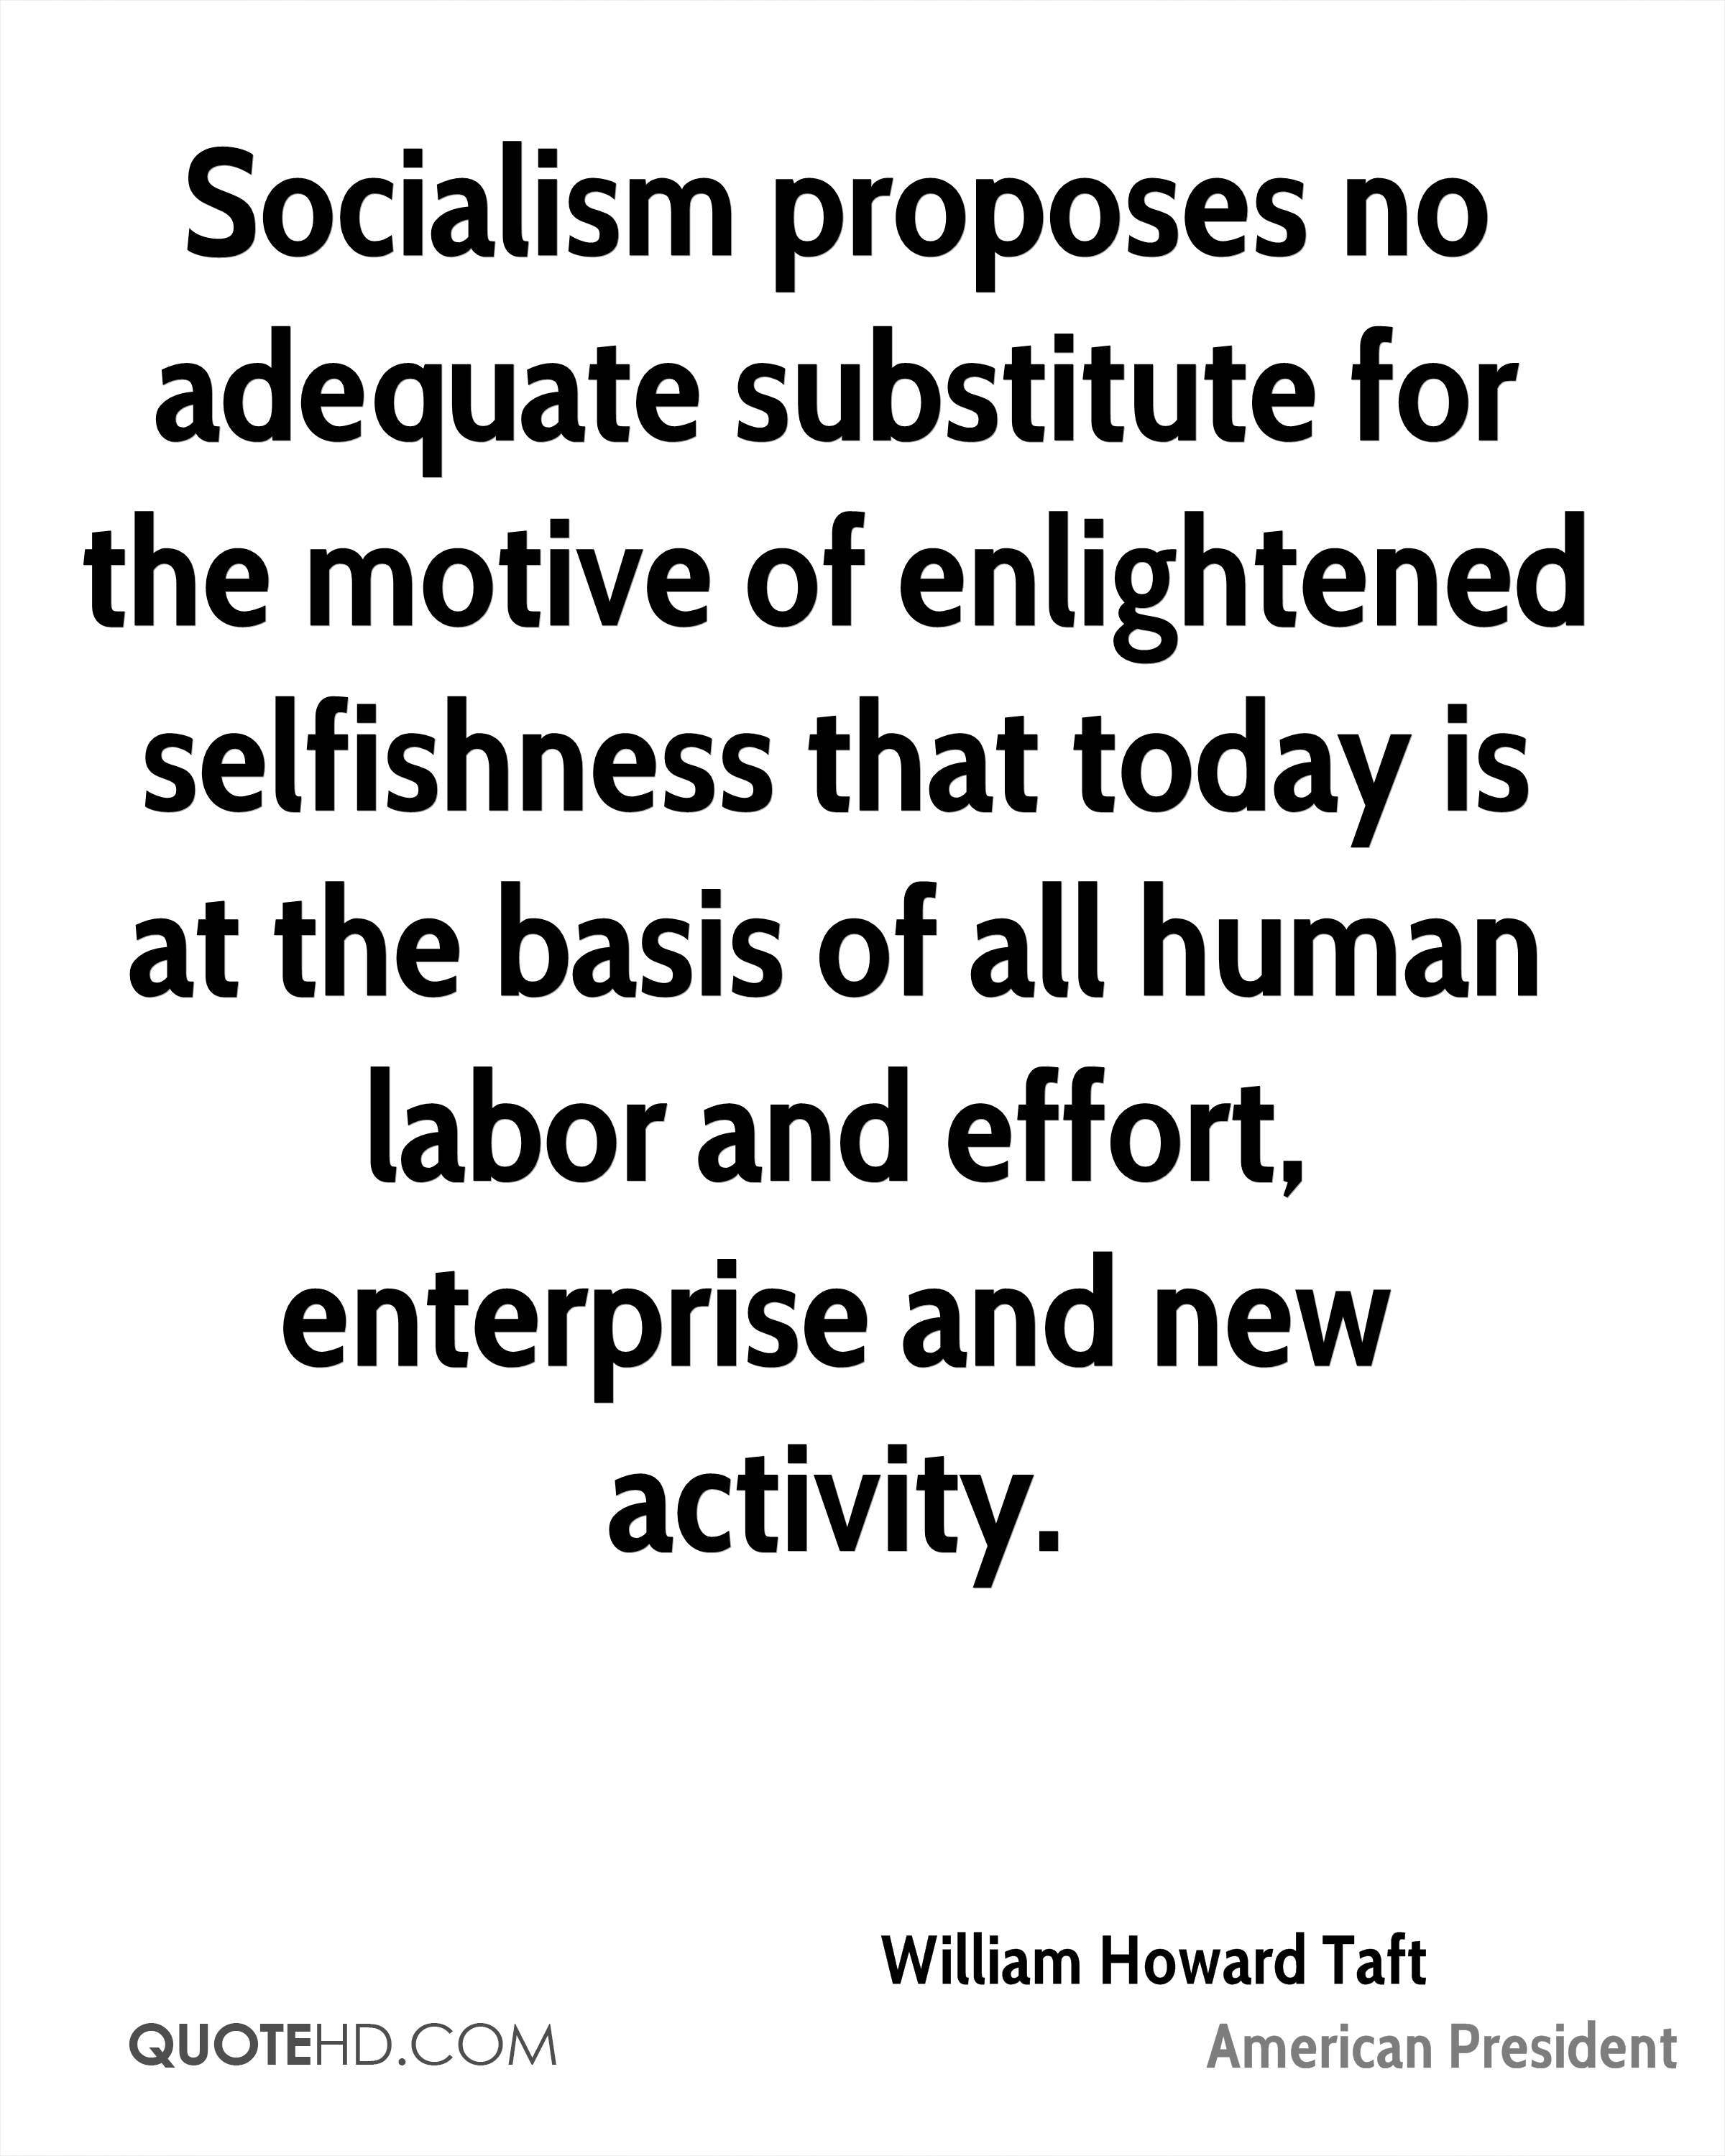 Socialism proposes no adequate substitute for the motive of enlightened selfishness that today is at the basis of all human labor and effort, enterprise and new activity.